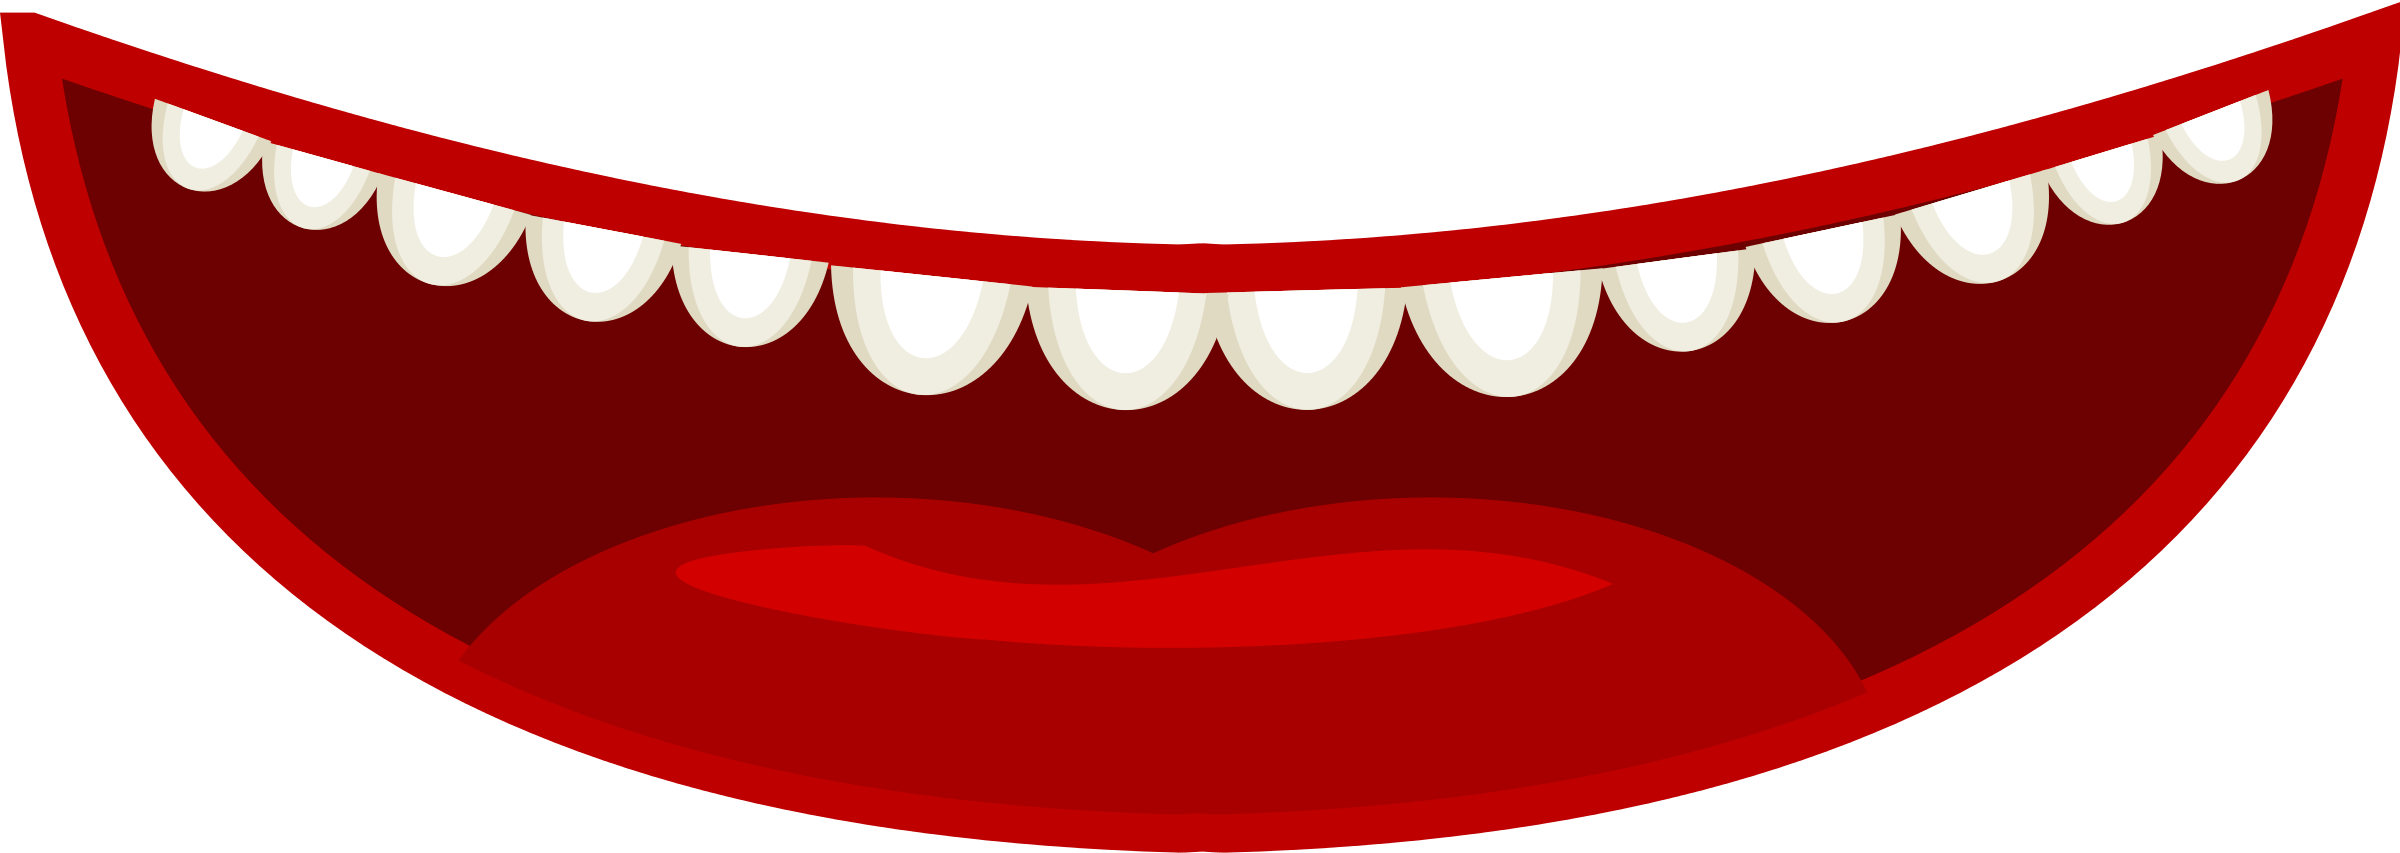 Mouth Clipart Images